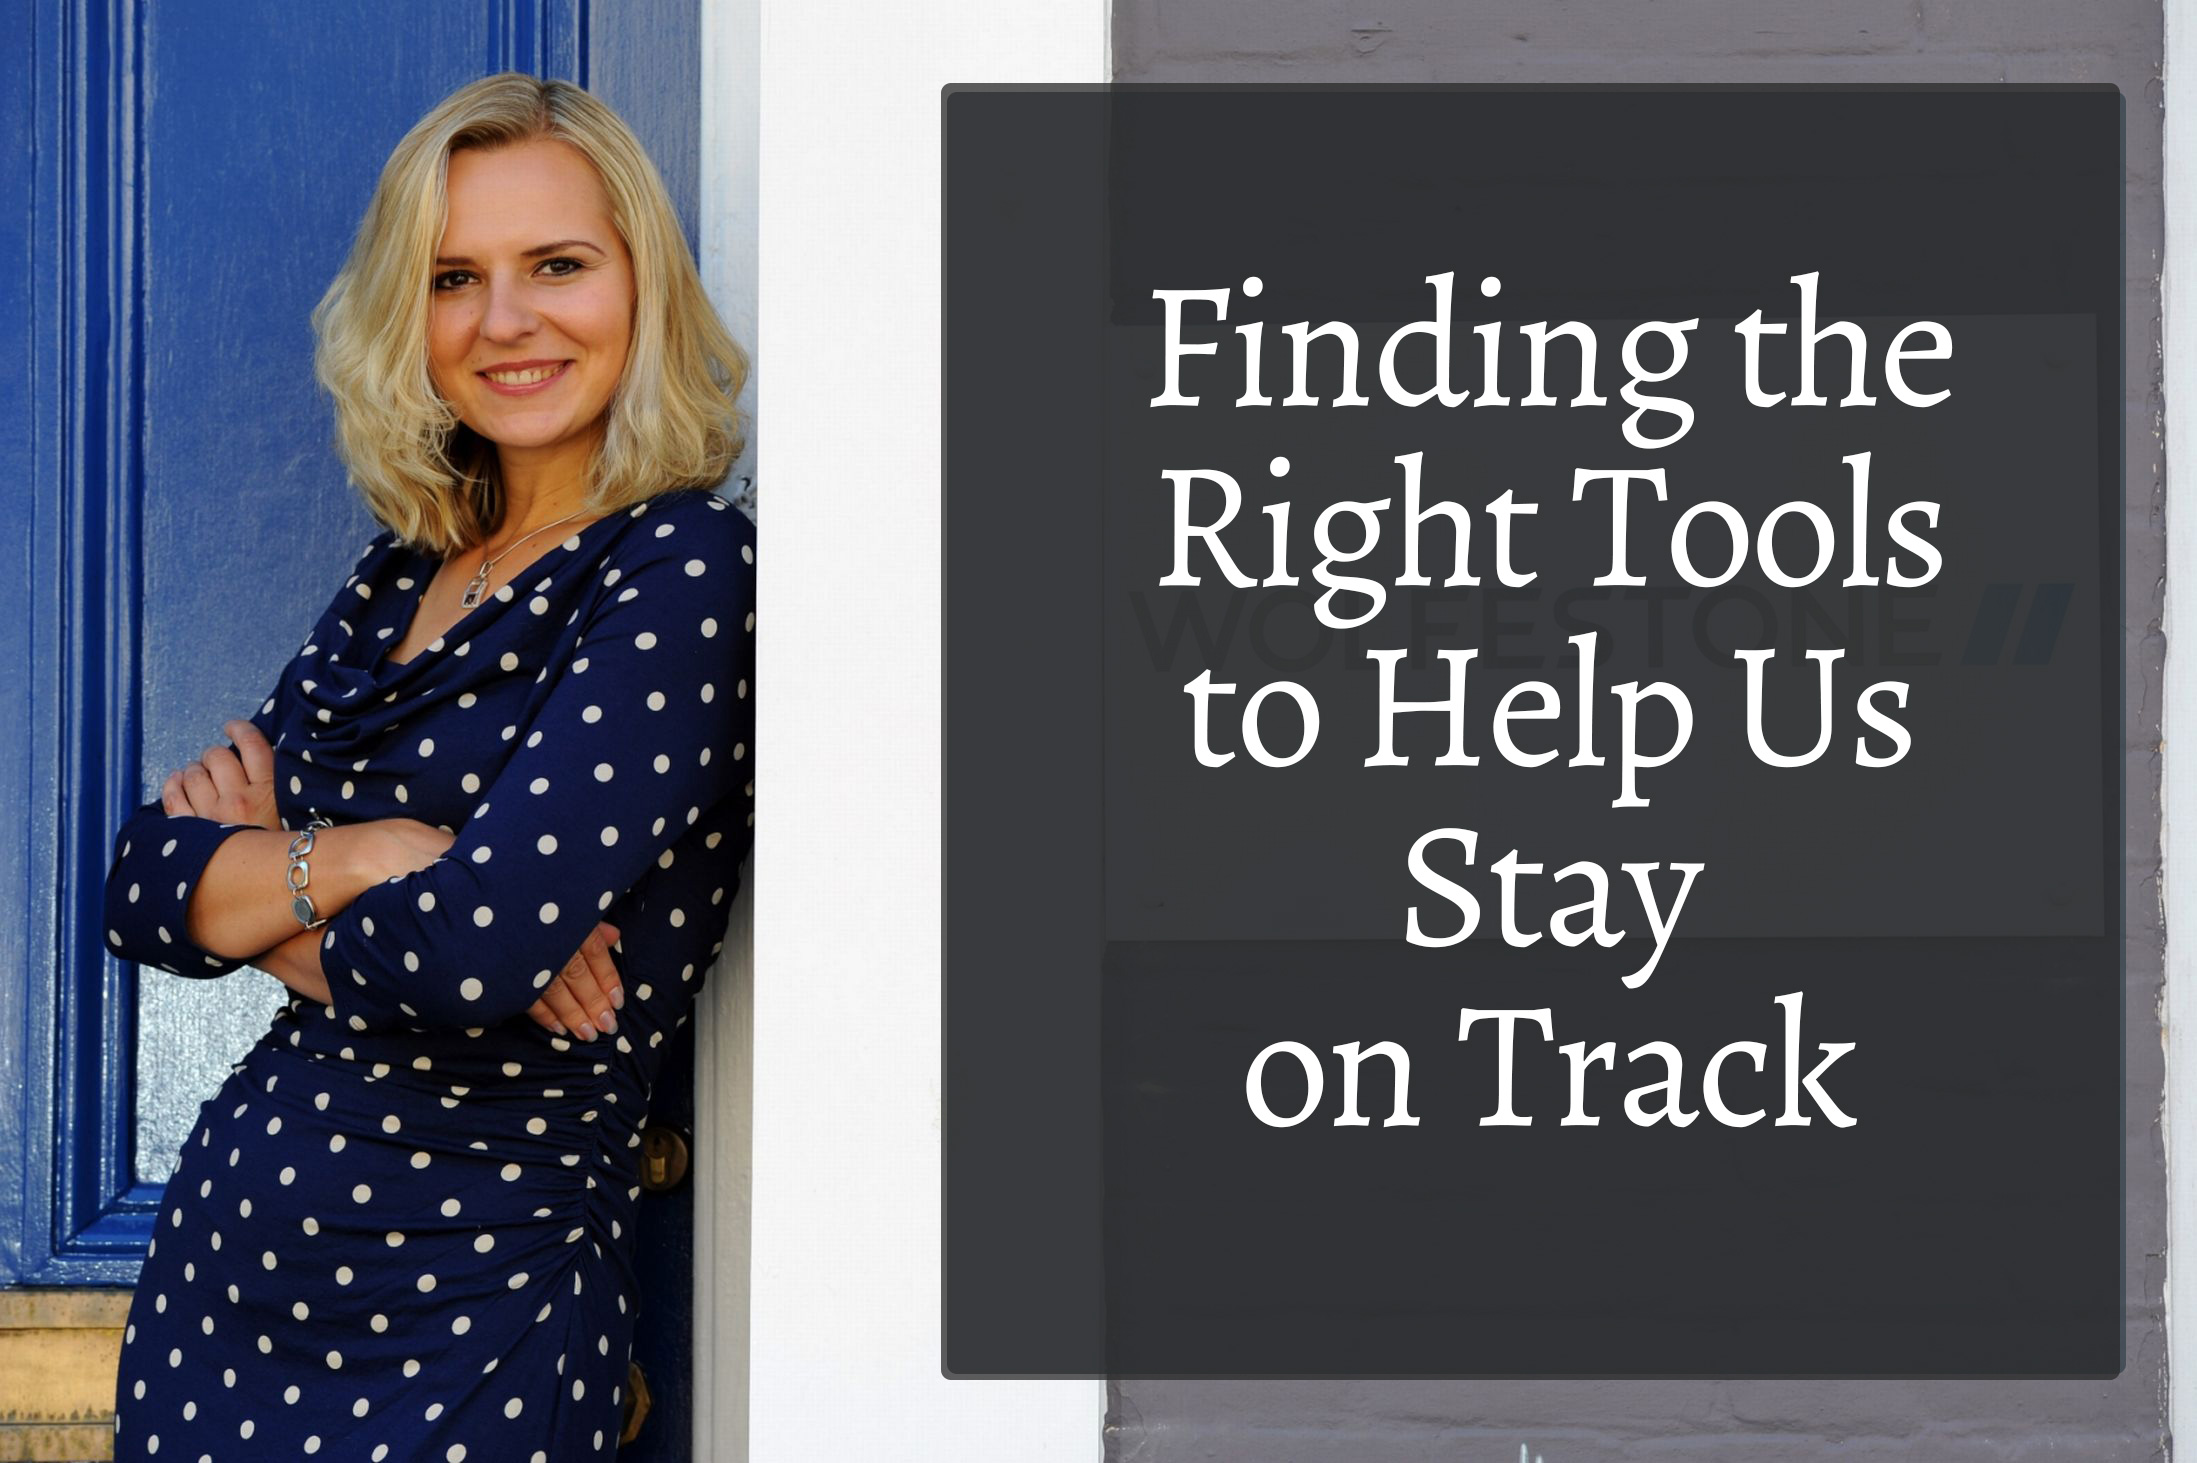 Finding the Right Tools to Help Us Stay on Track